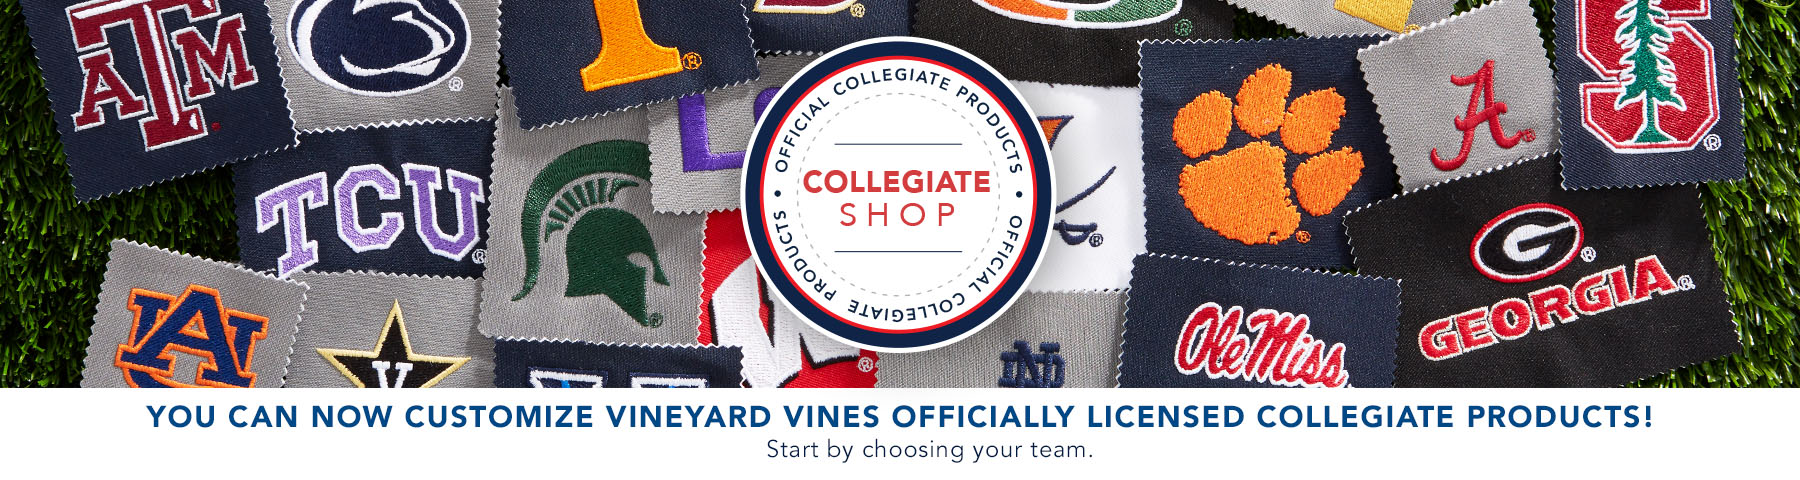 You can now customize vineyard vines officially licensed Collegiate products! Start by choosing your team below.